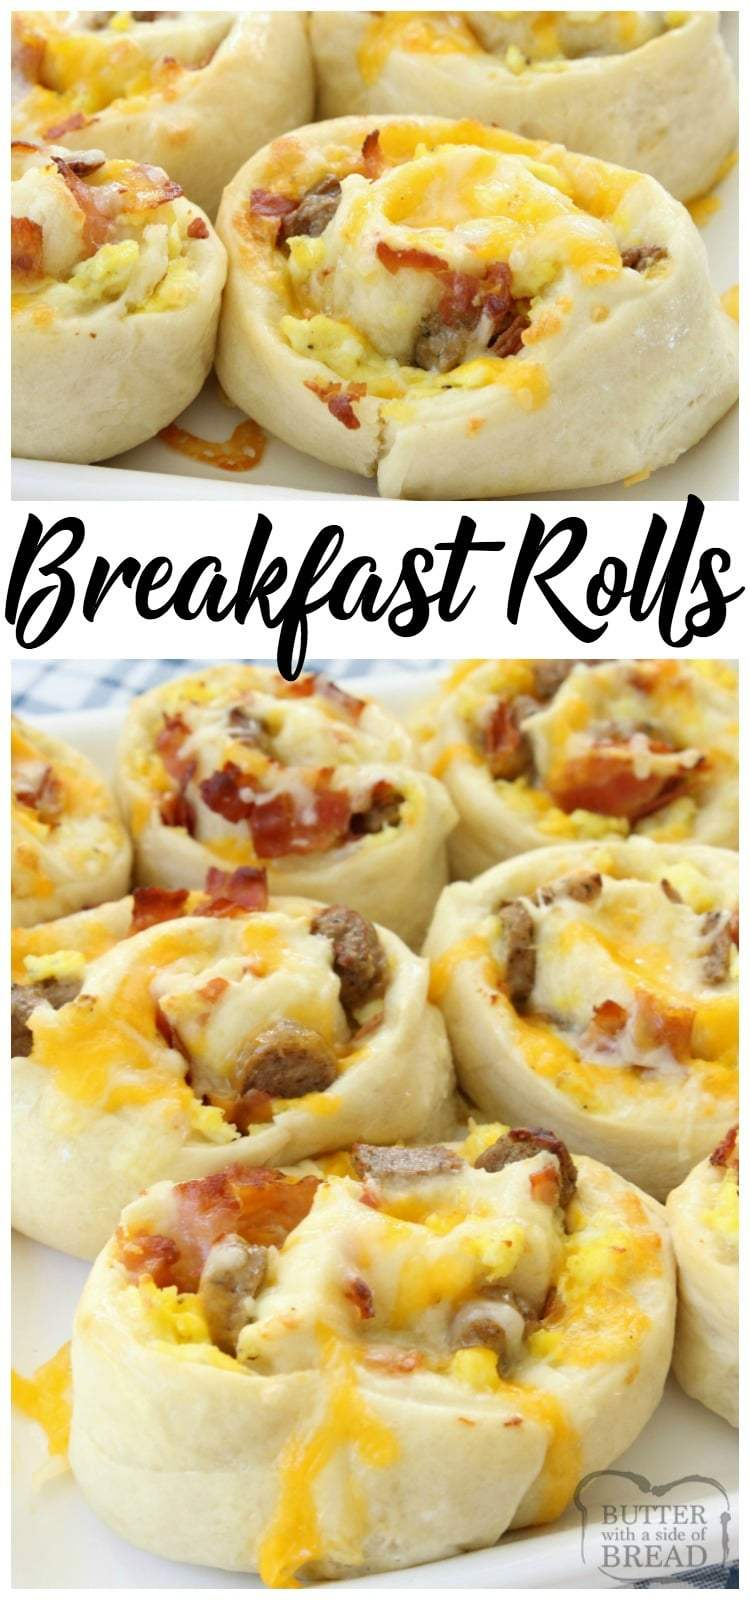 Breakfast Rolls filled with scrambled eggs, bacon, sausage & cheese then rolled in homemade dough and baked to perfection. These rolls are perfect for breakfast, brunch or dinner!